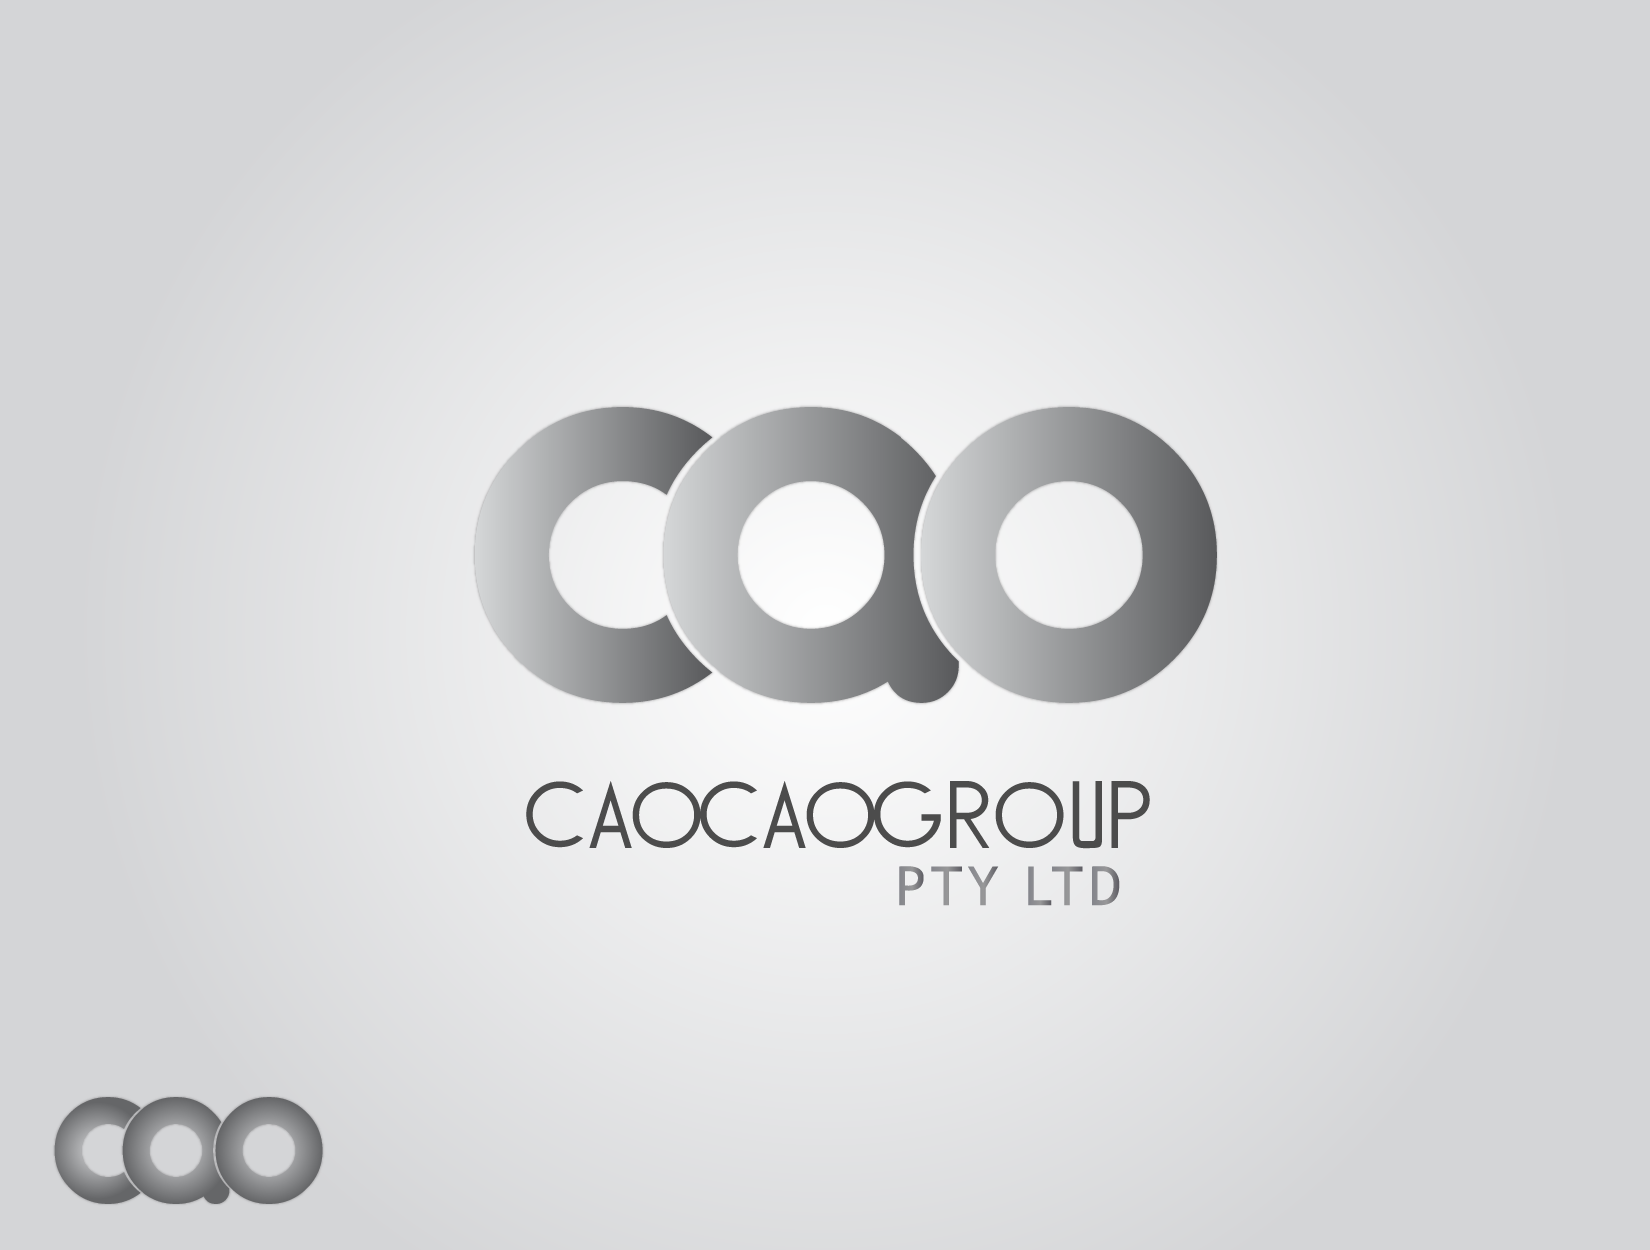 Logo Design by funkeekhan - Entry No. 175 in the Logo Design Contest cao cao group pty ltd Logo Design.